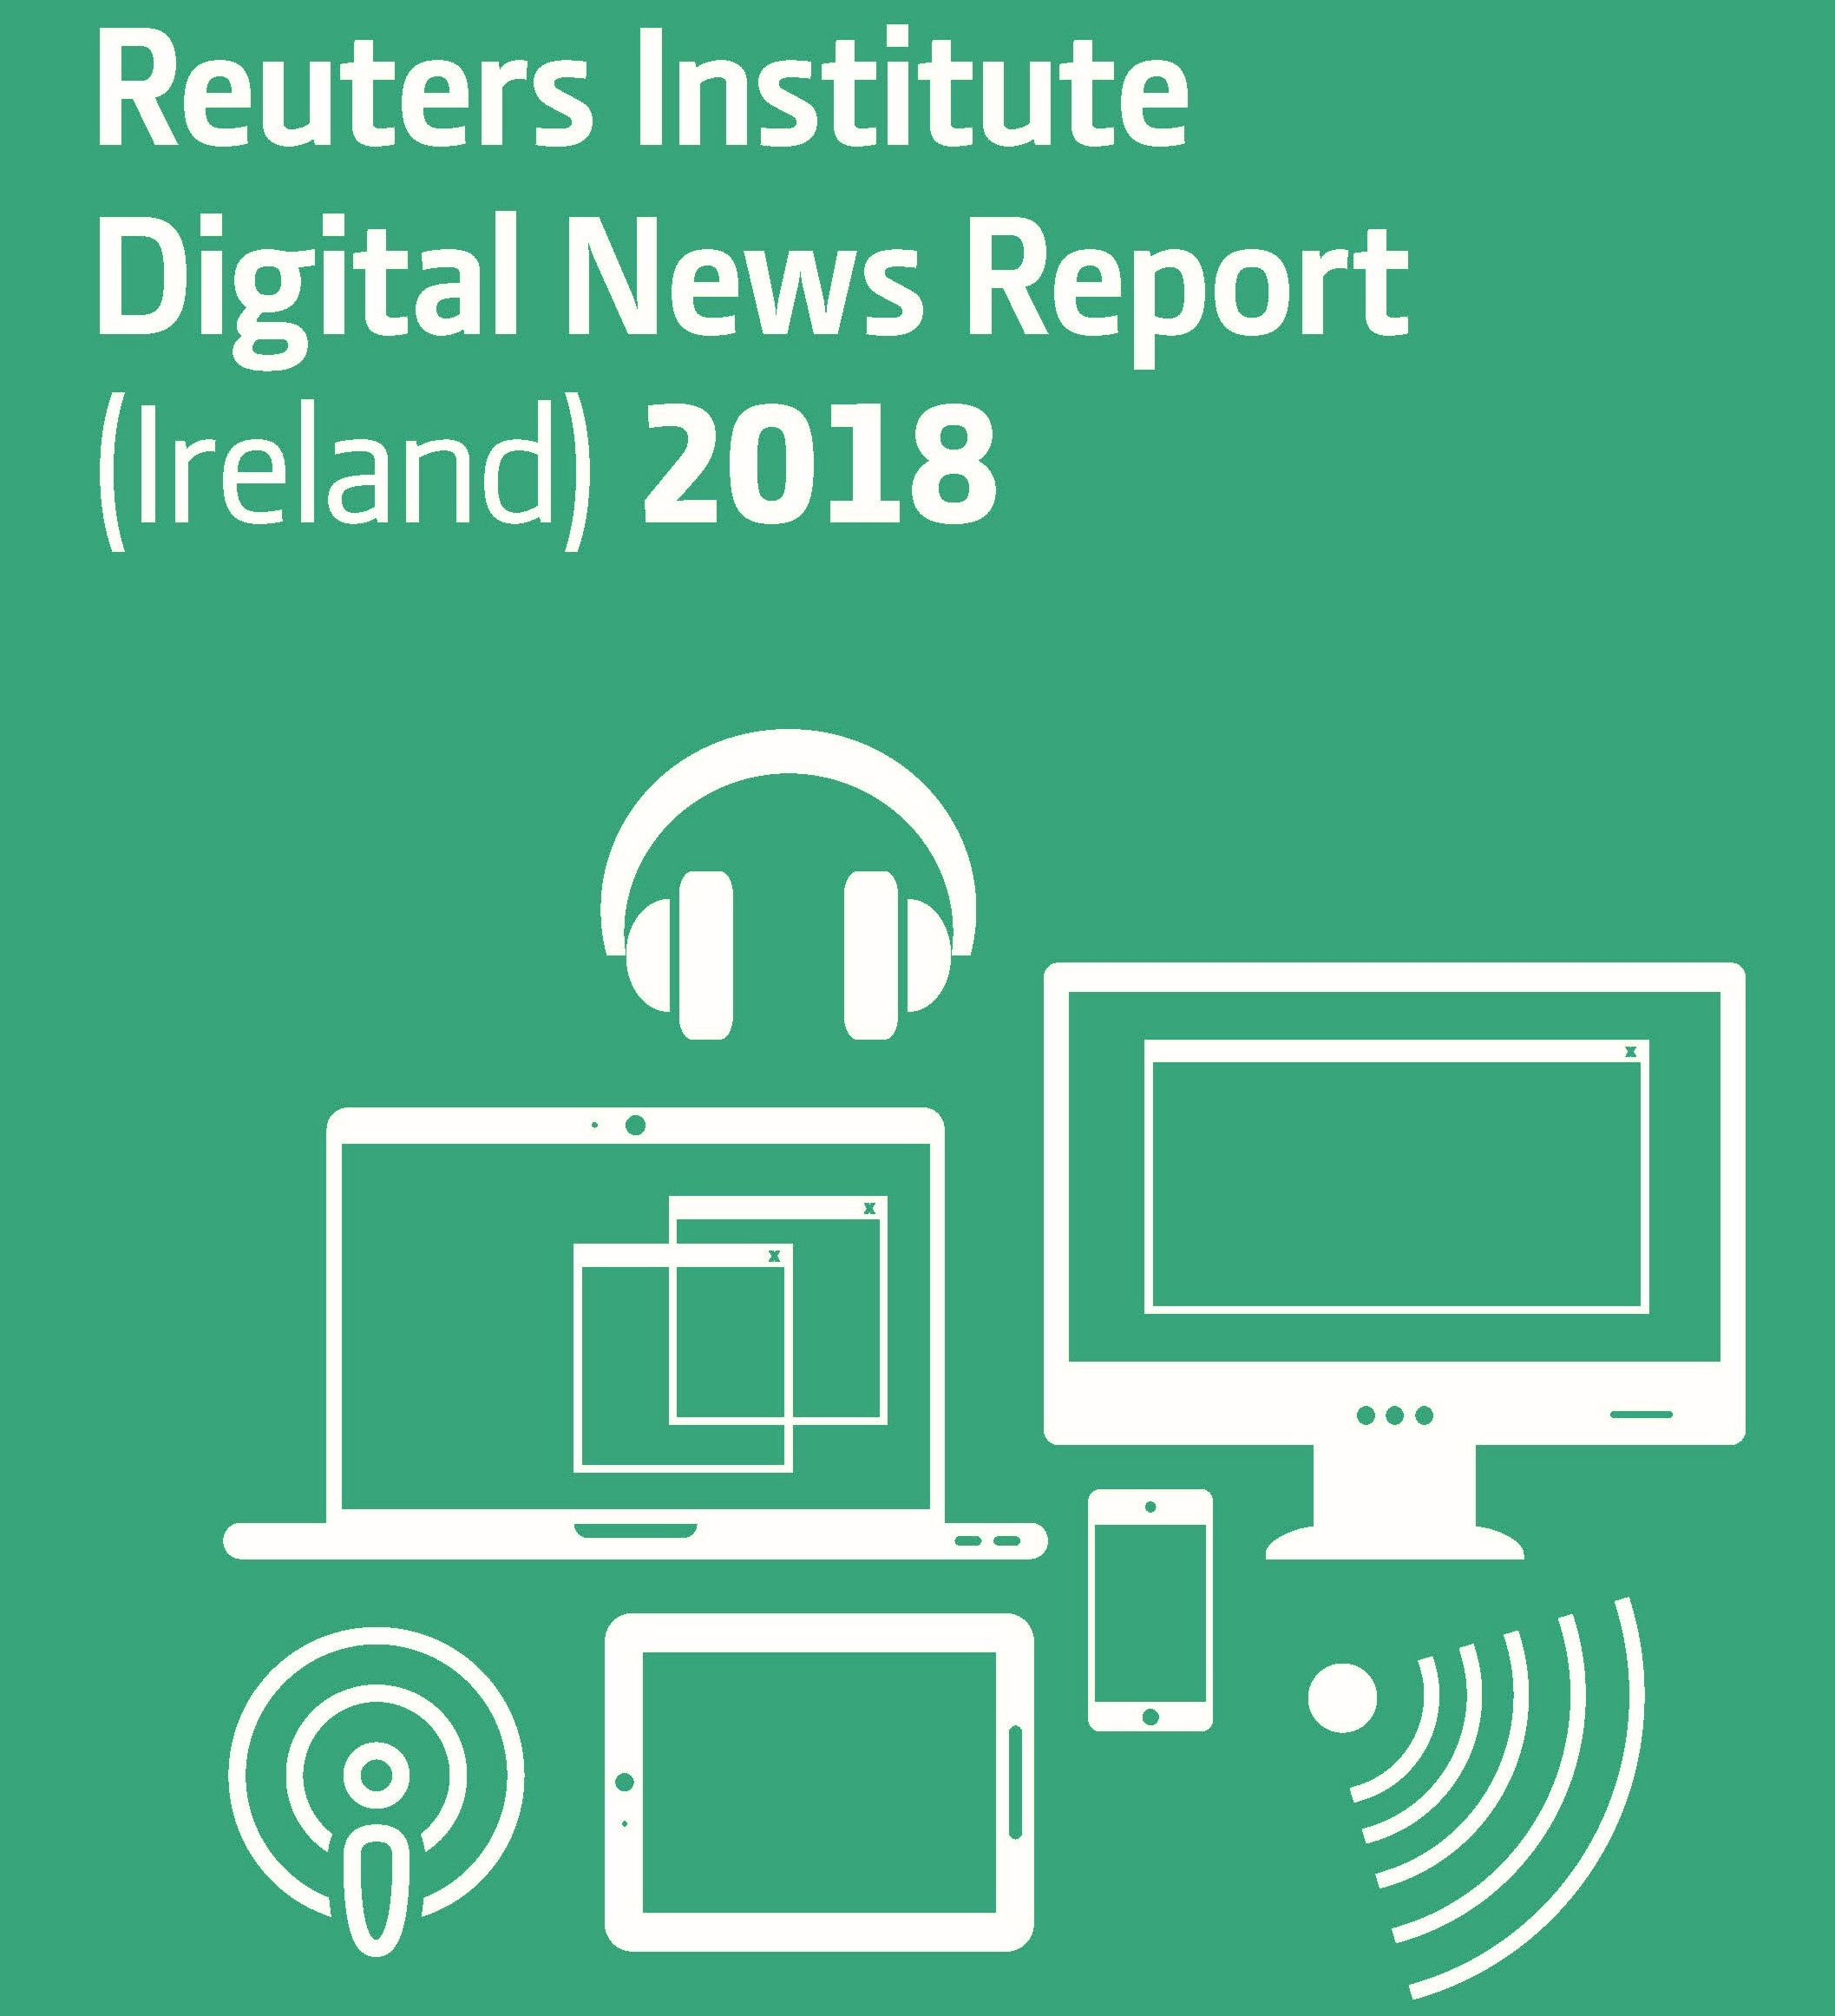 Use of social media for news amongst Irish consumers declines while understanding of how news appears in their social media feeds remains low